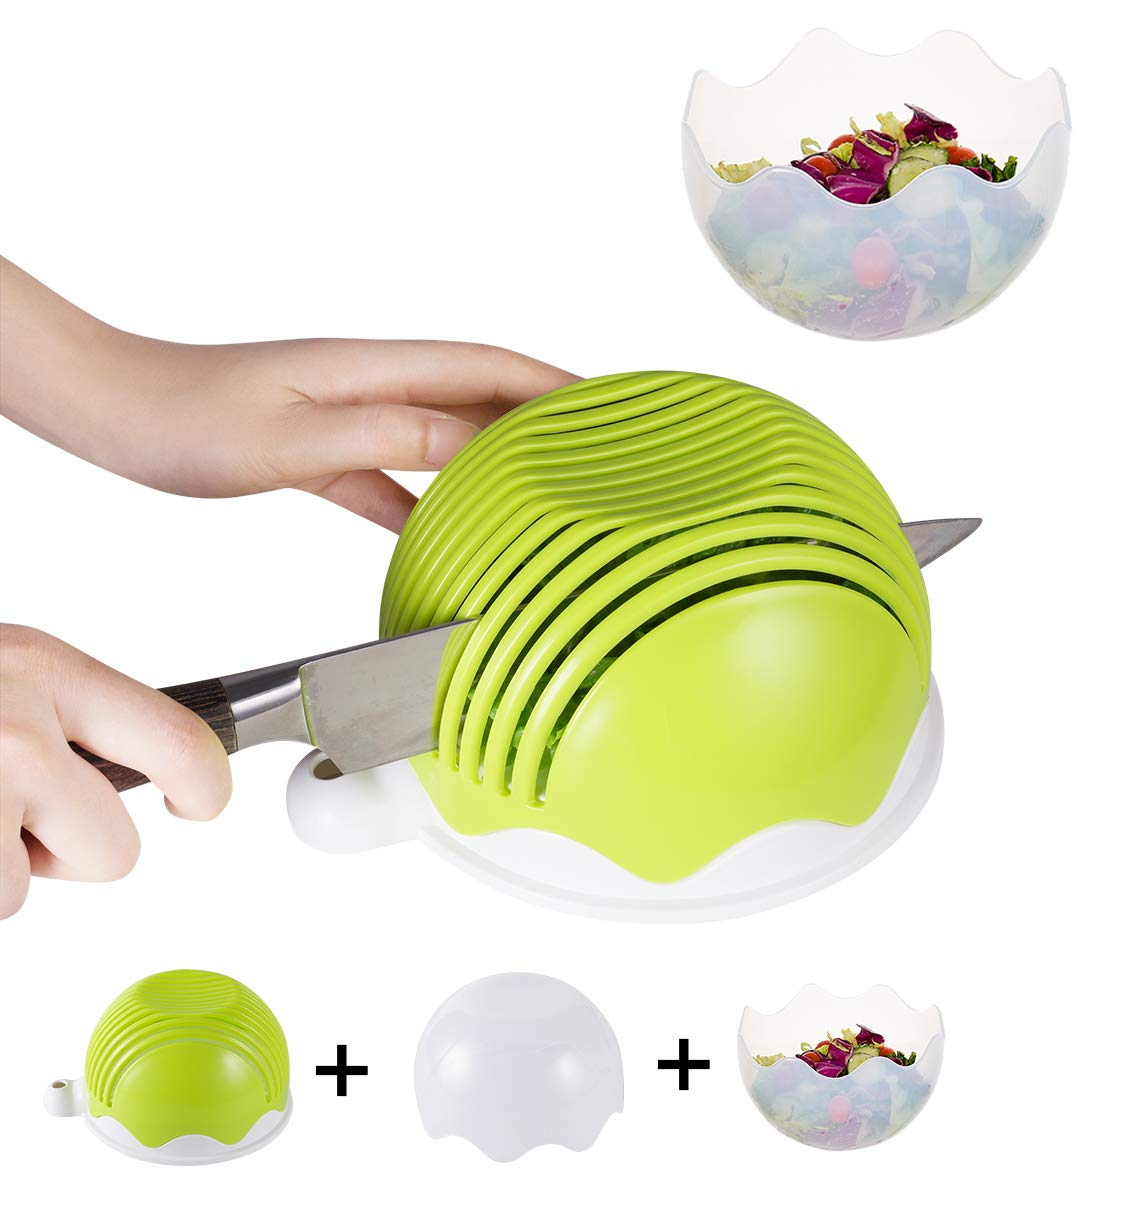 Salad Cutter Bowl and Salad Bowl, Raking 60seconds Salad Maker Set – Big Size